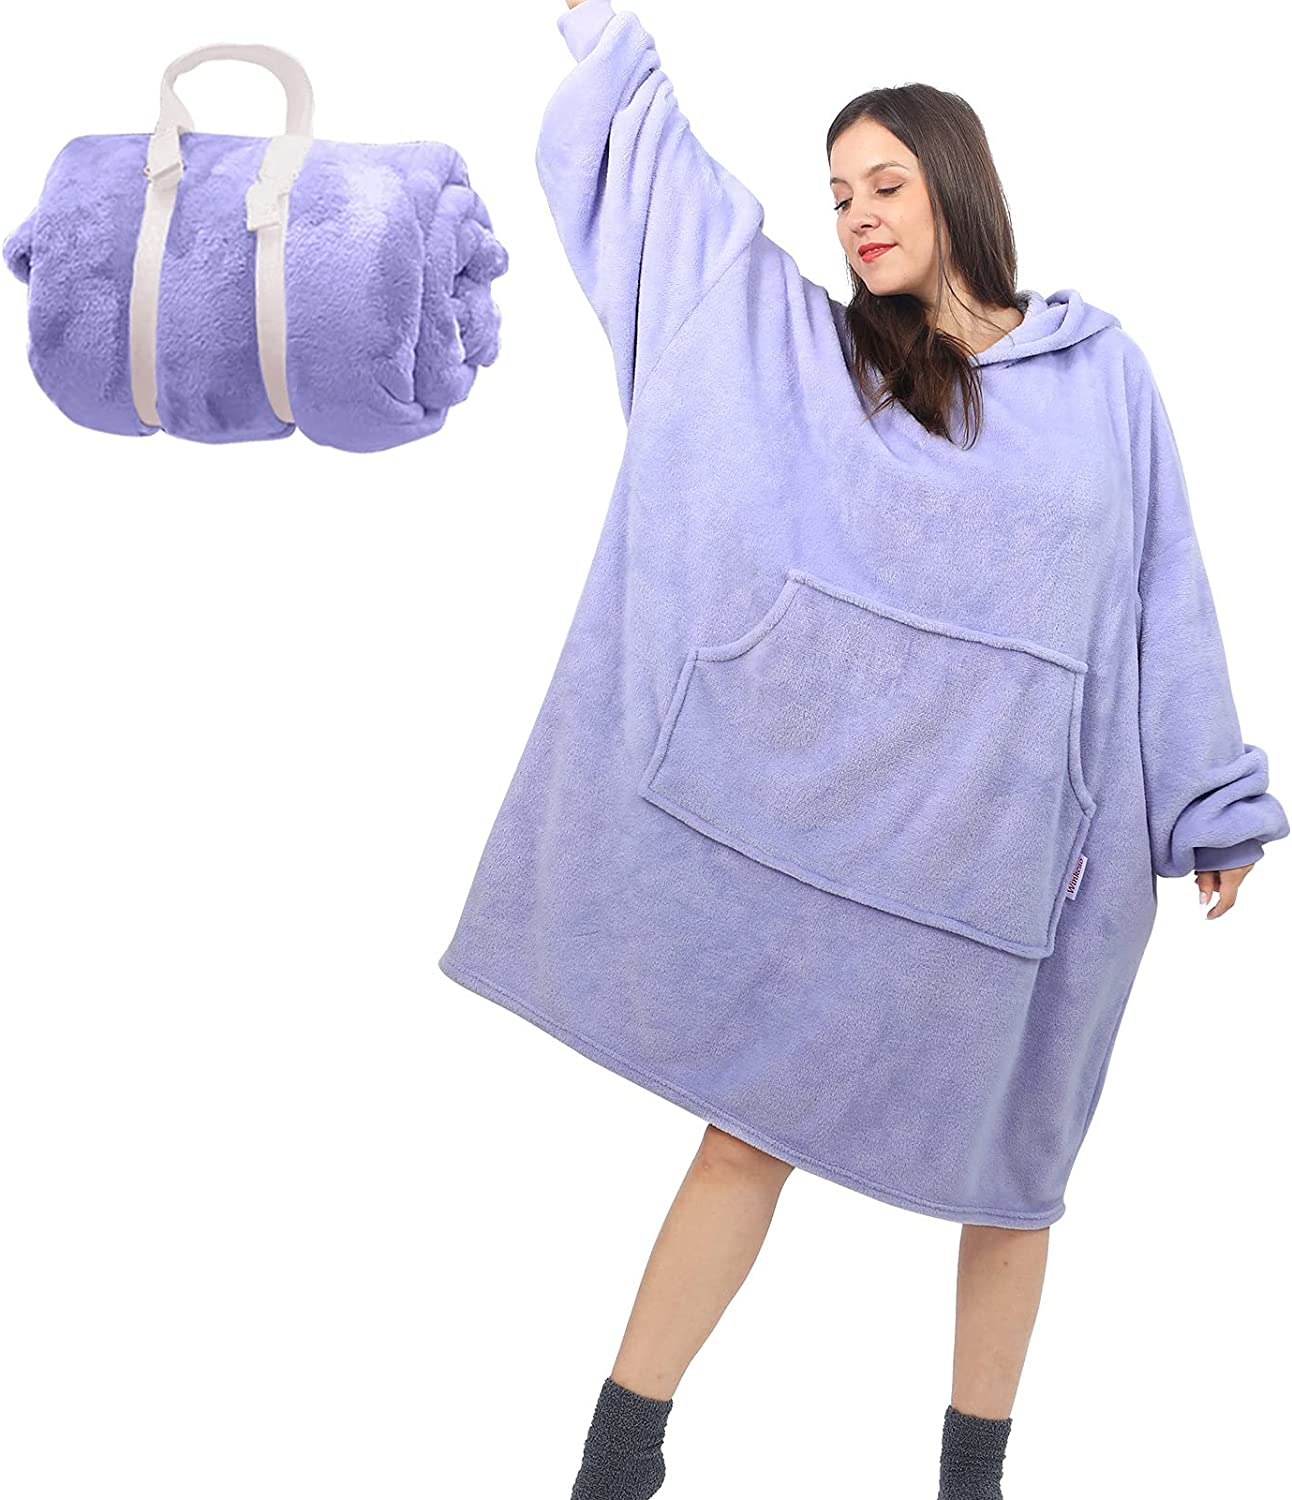 Lightweight Max 48% OFF Oversized Hoodie Blanket Blan Rare Giant Wearable